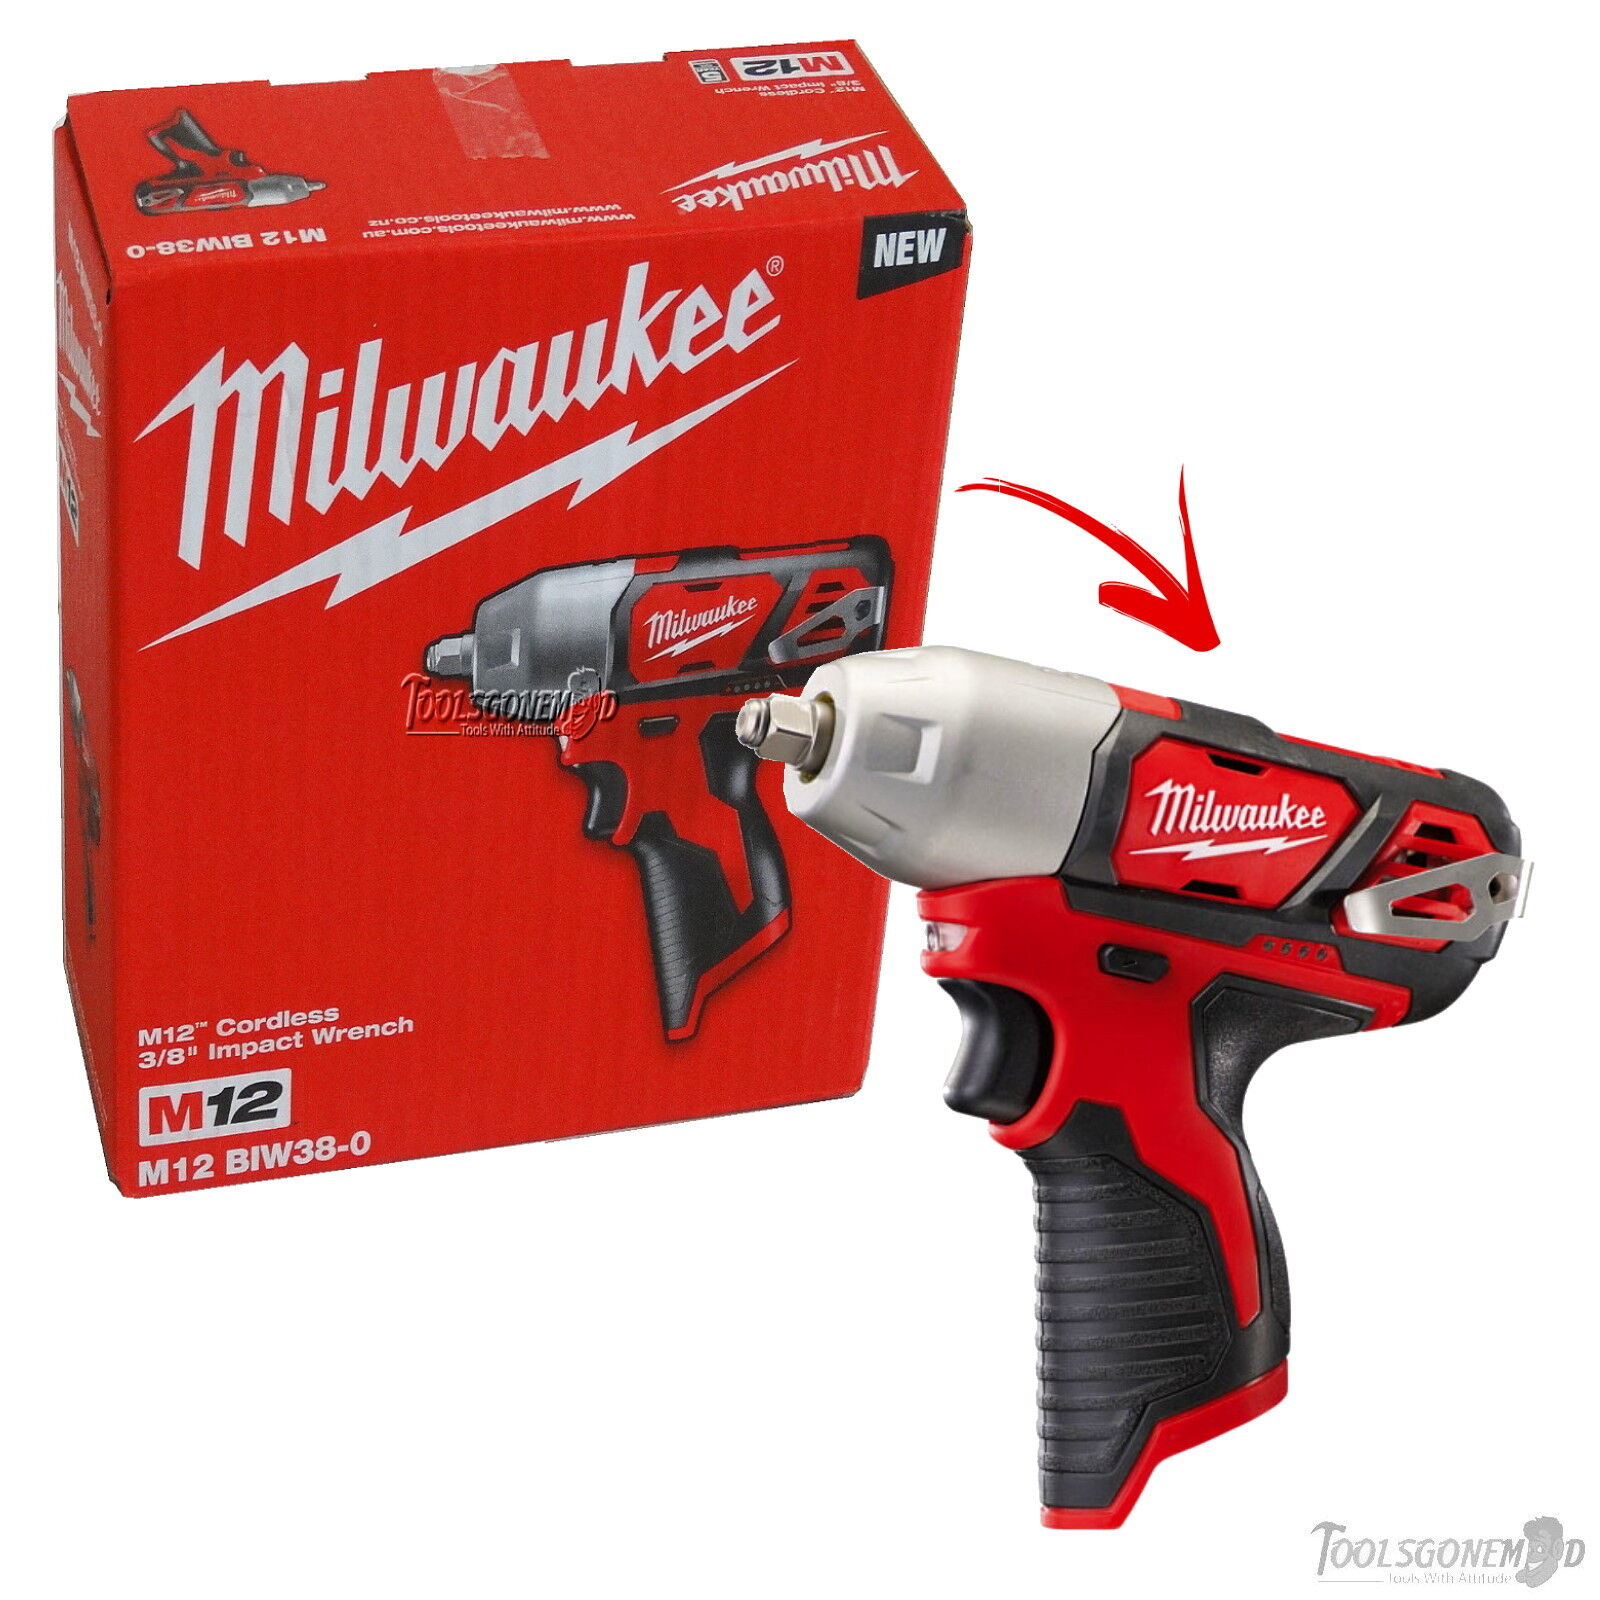 "Milwaukee 12V Li-Ion Cordless Compact Impact Wrench Drill 3//8/"" Body Only"